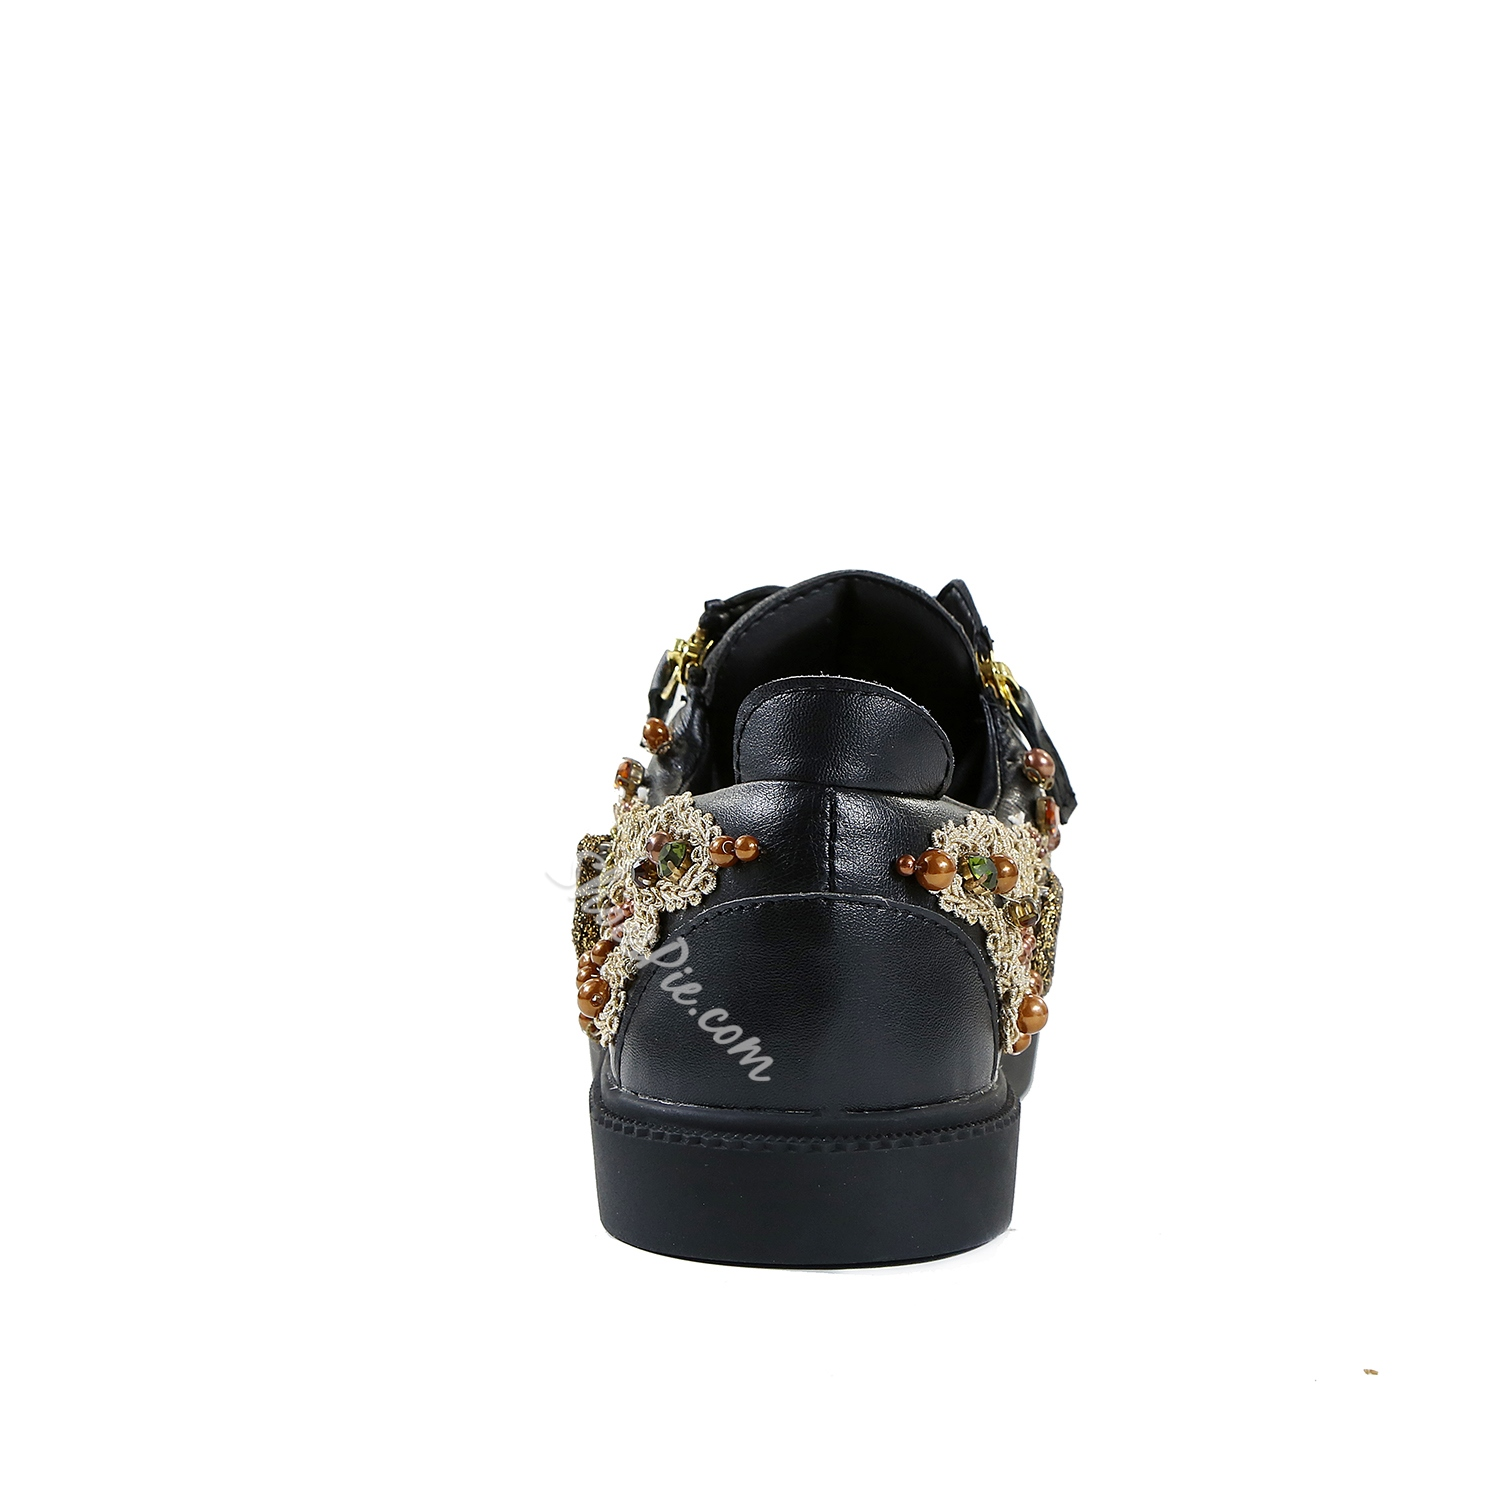 Shoespie Rhinestone Color Block Lace-Up Beads Zipper Sneaker